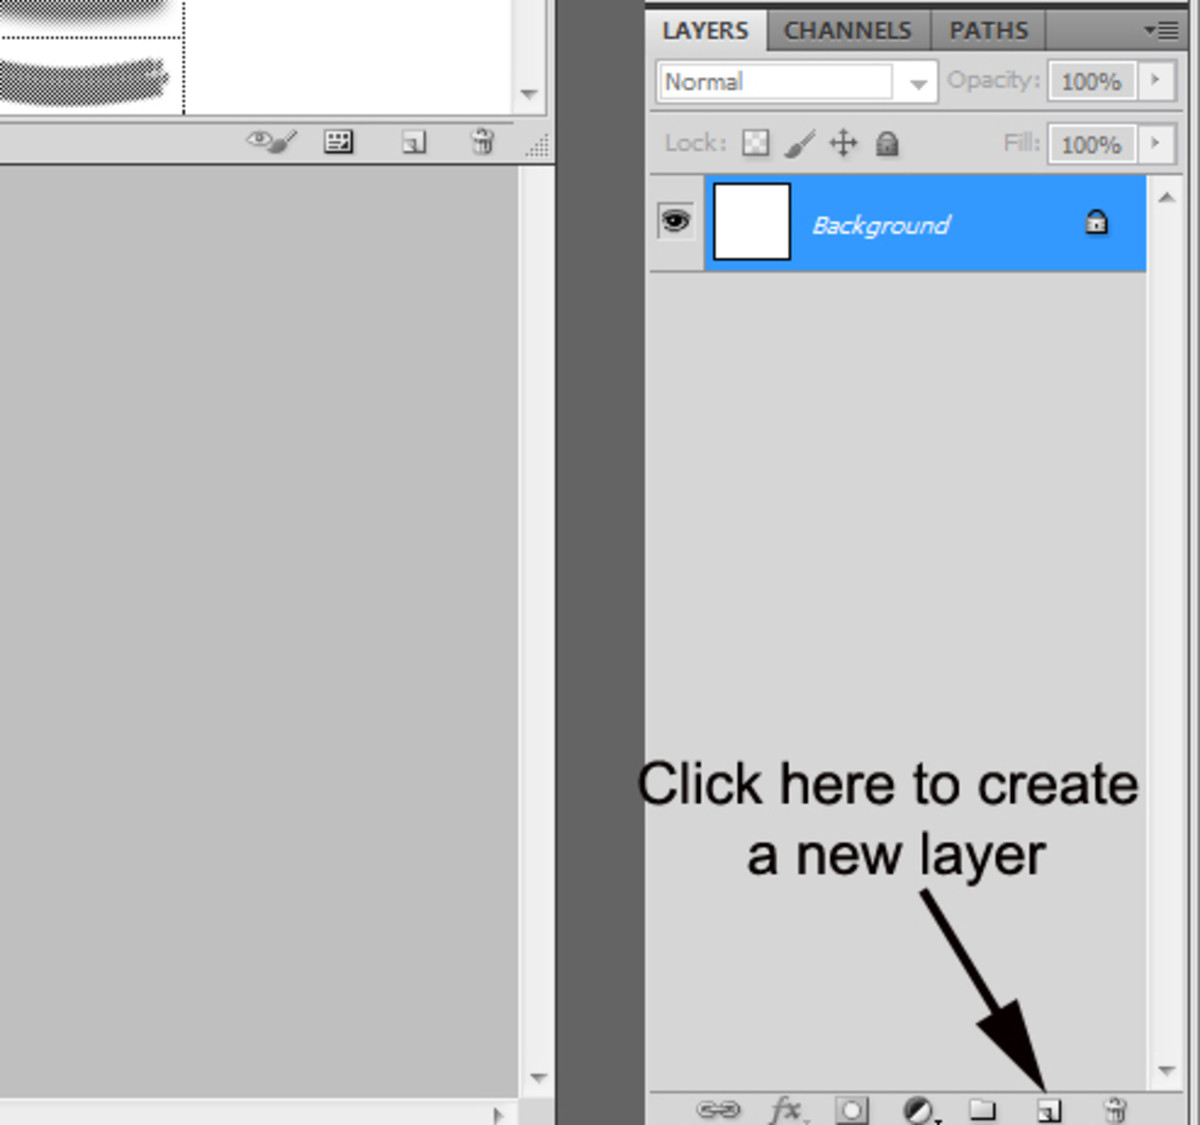 2. Create a new layer by clicking this button in the bottom right corner of the program